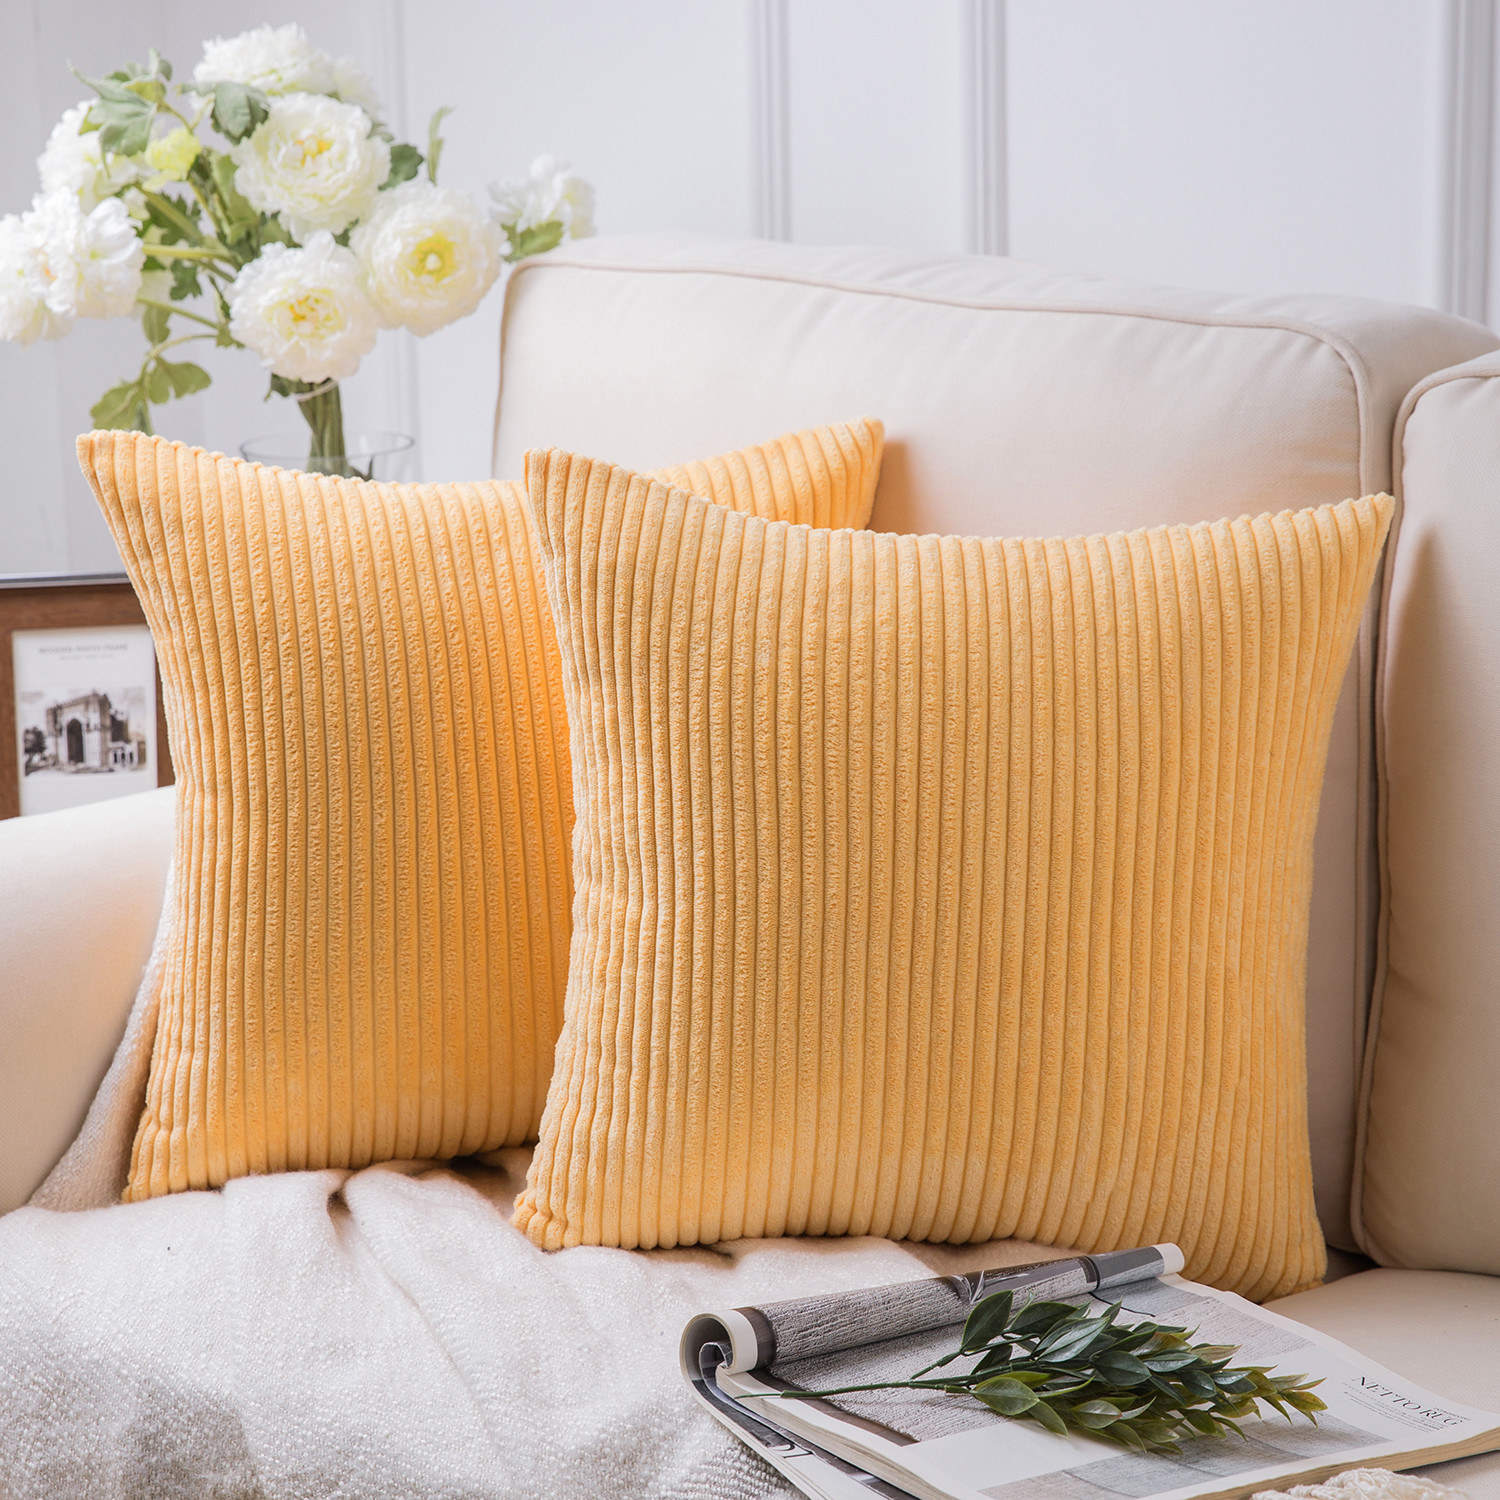 Two beige-colored pillows with corduroy ribbing